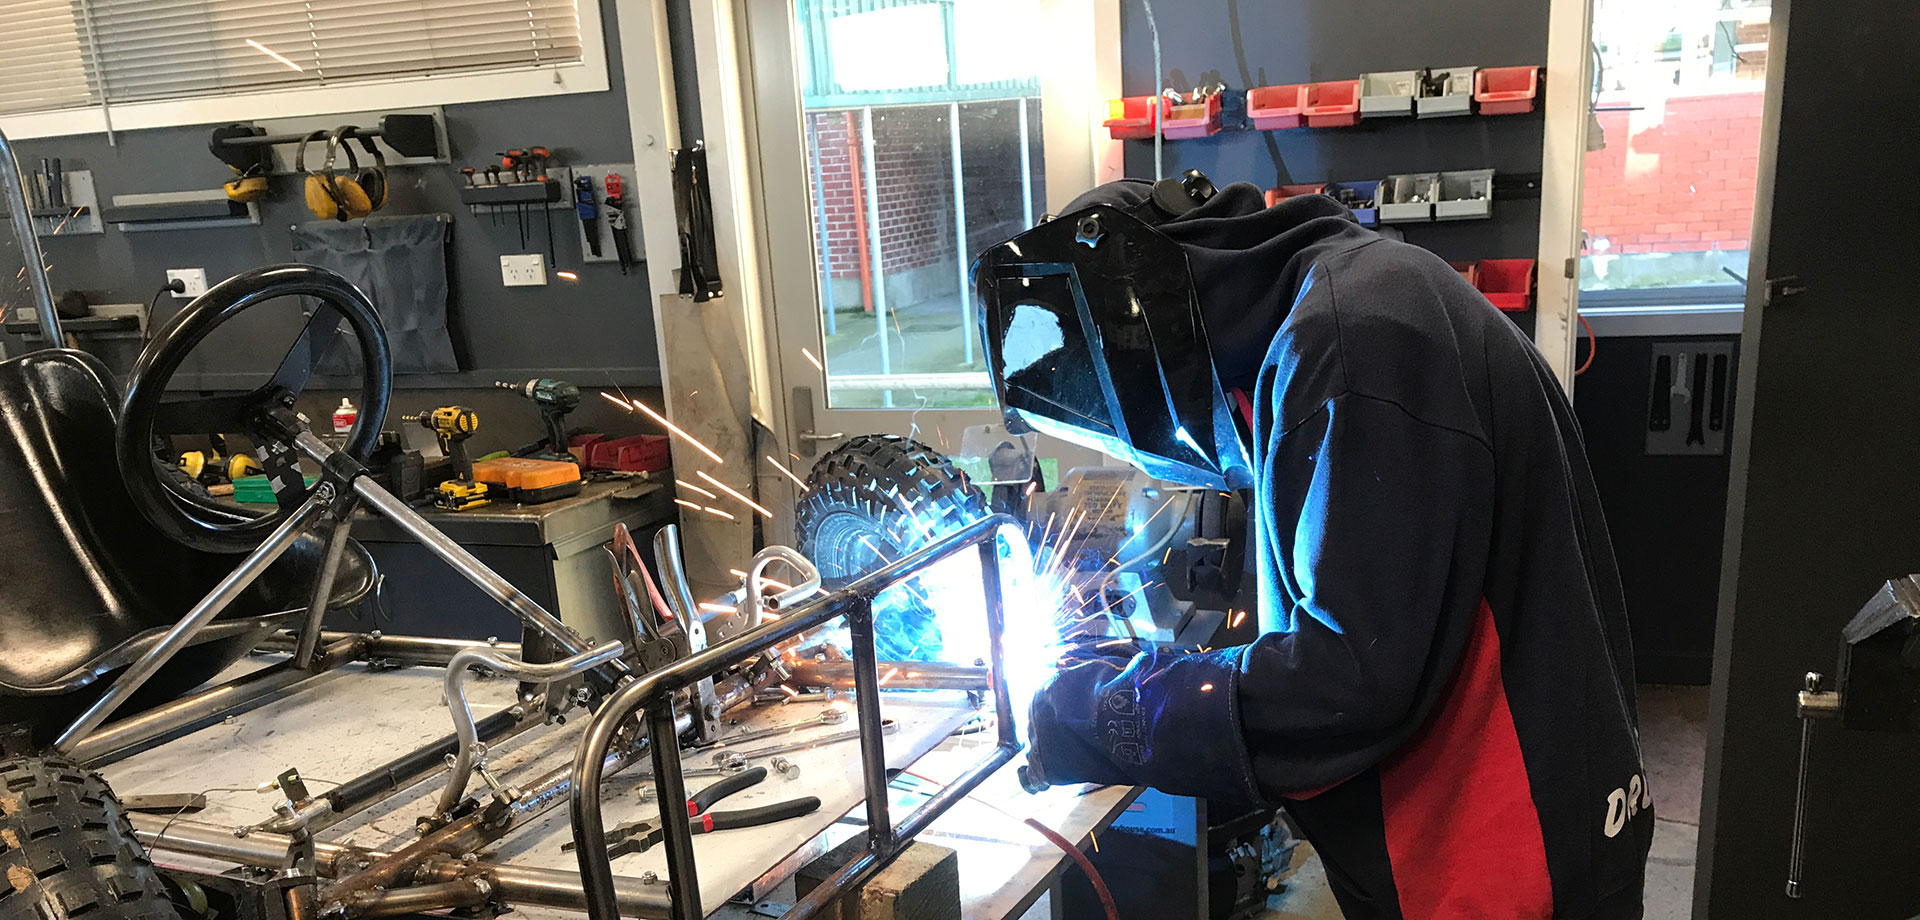 Learn some new skills at our school including welding